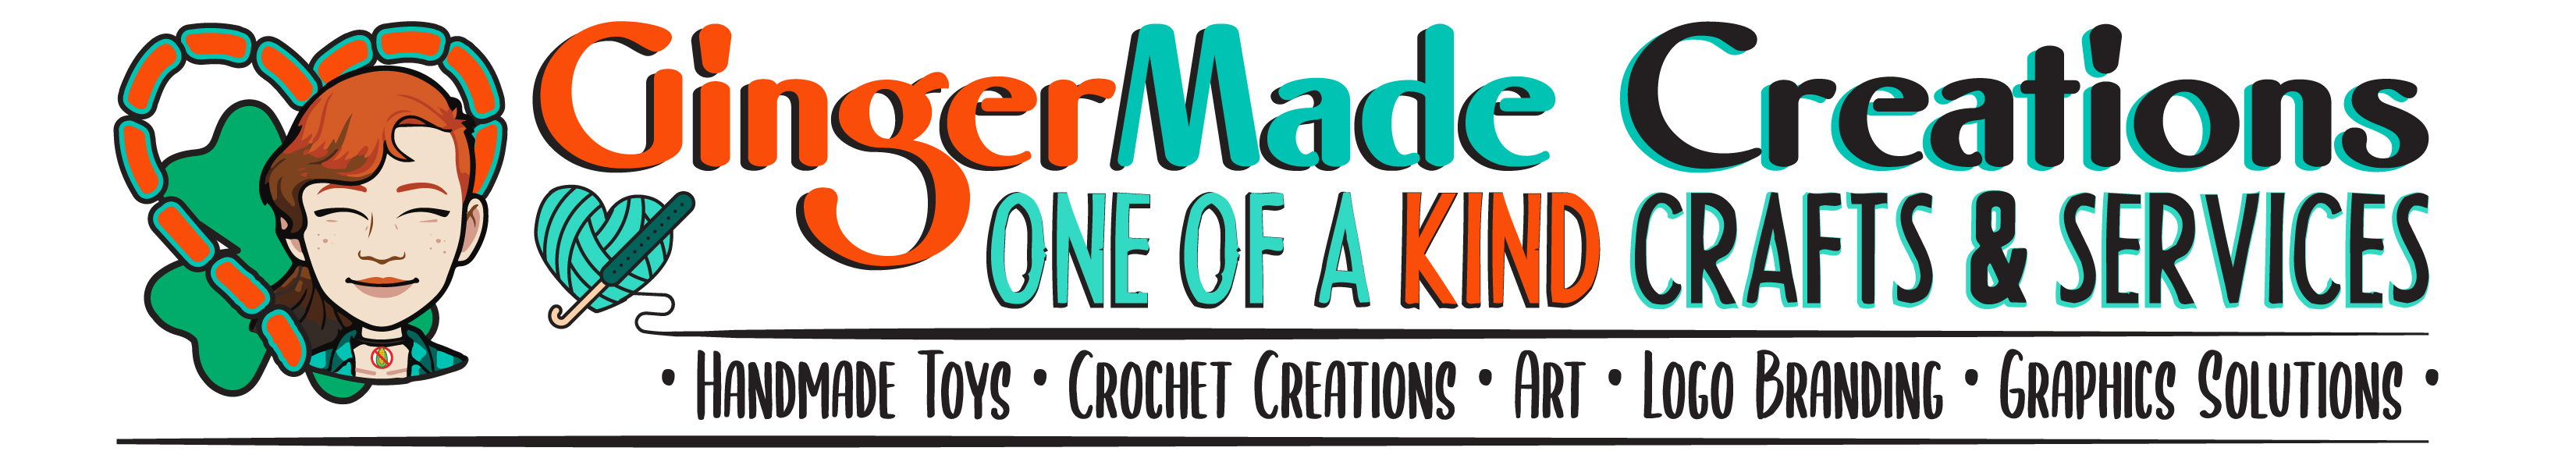 GingerMade Creations